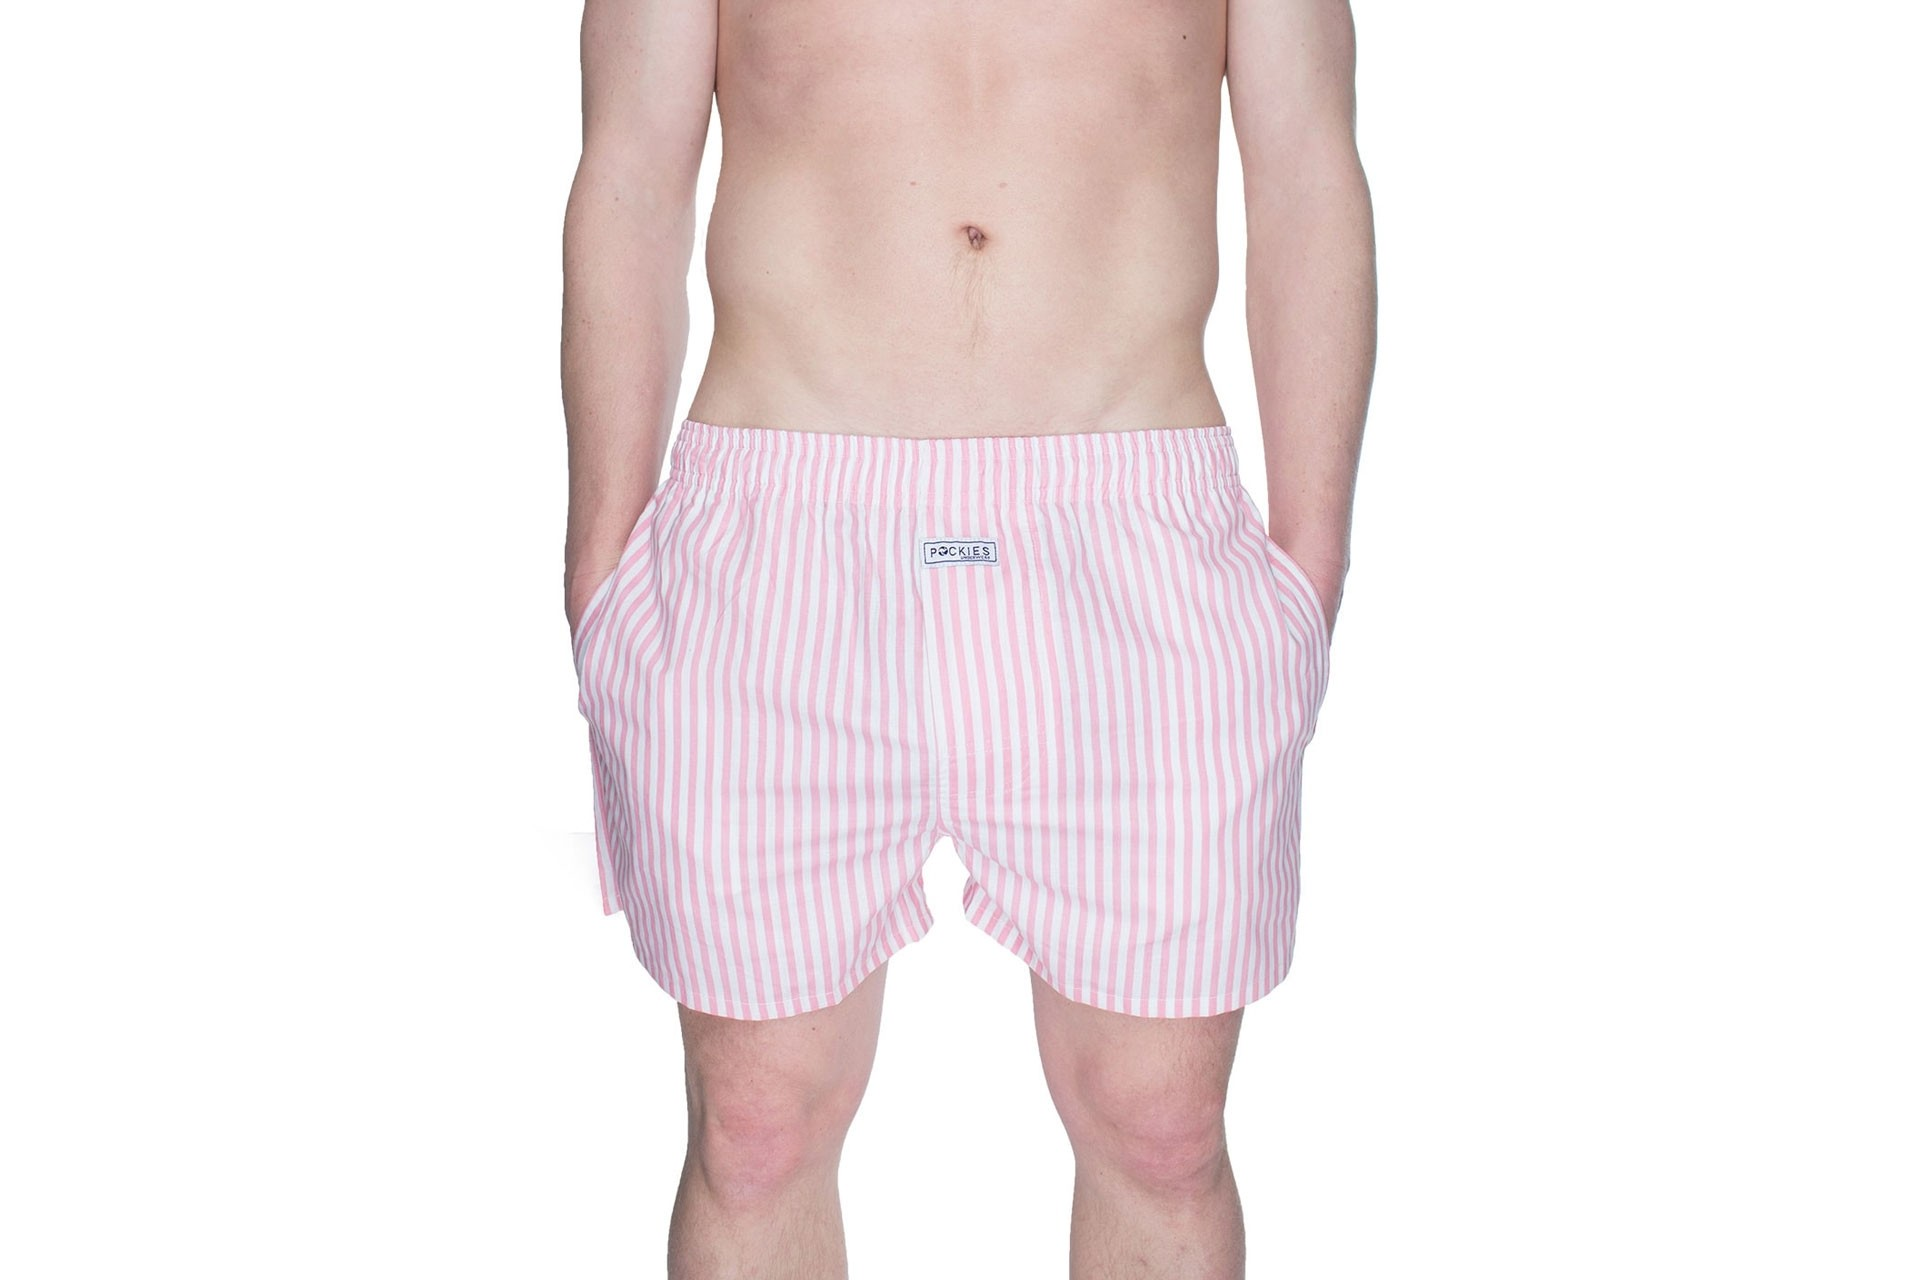 Foto van Pockies Boxershort Pink Stripes Pink